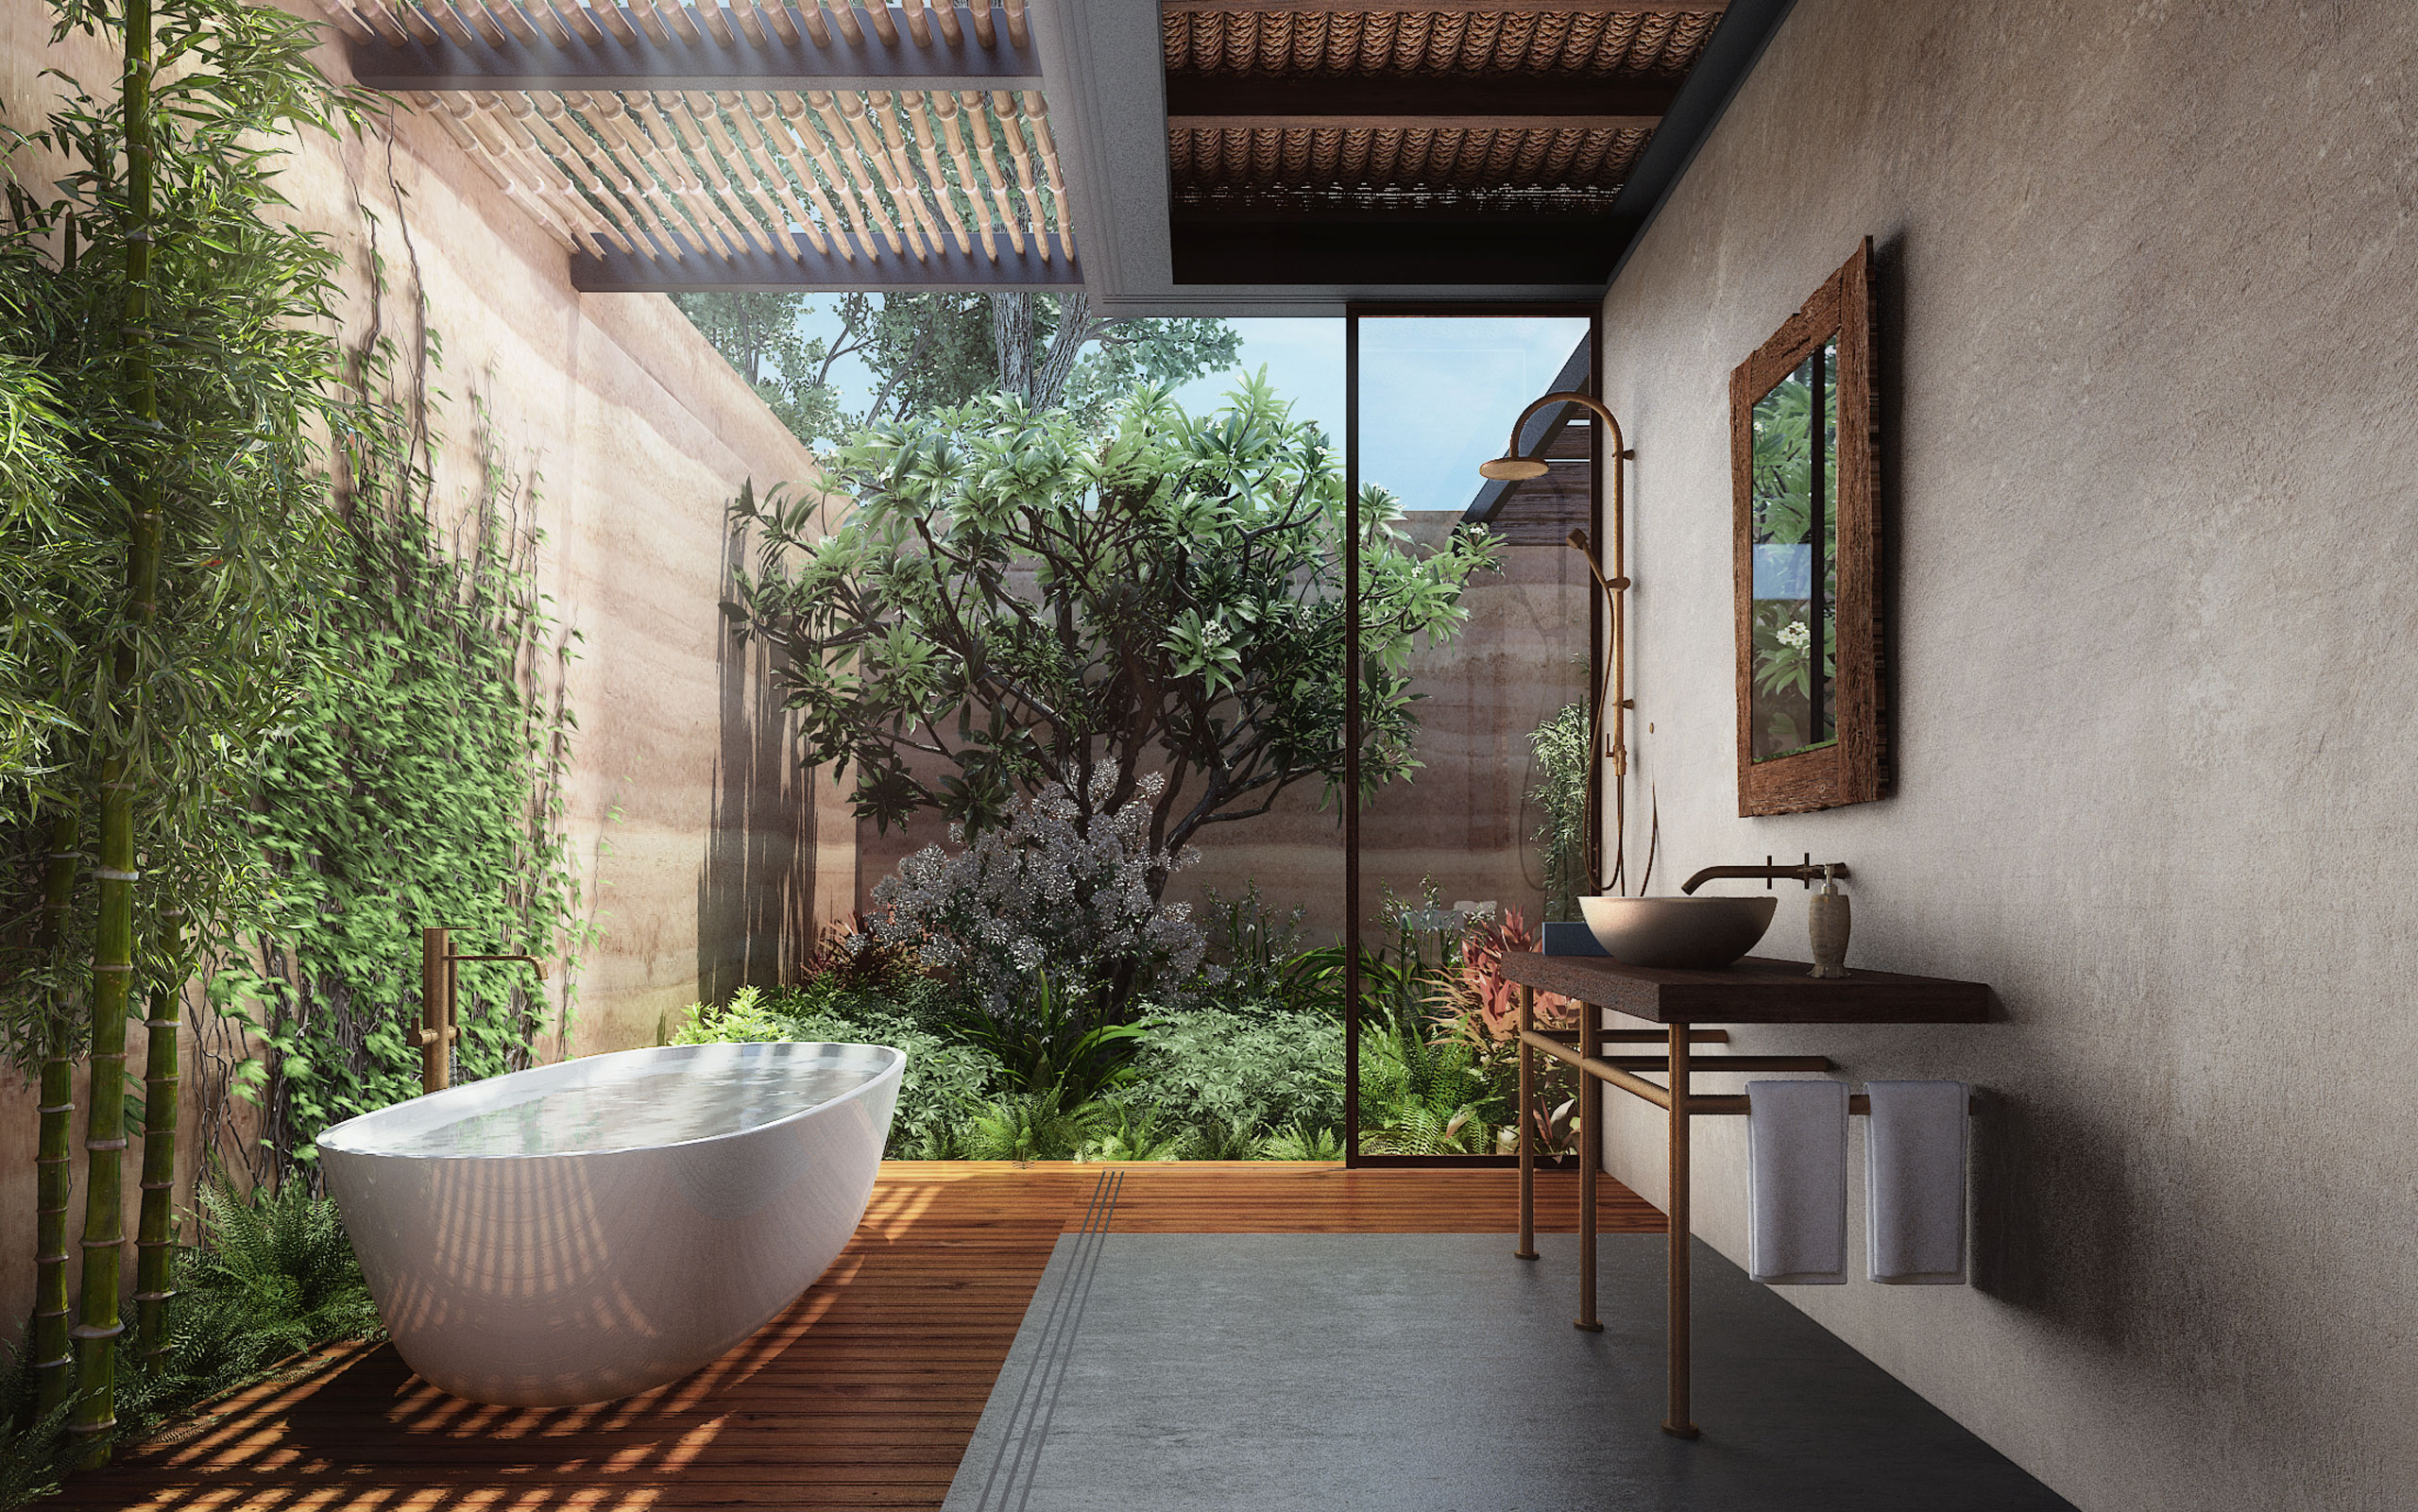 bathroom and Courtyard - Wellness Centre